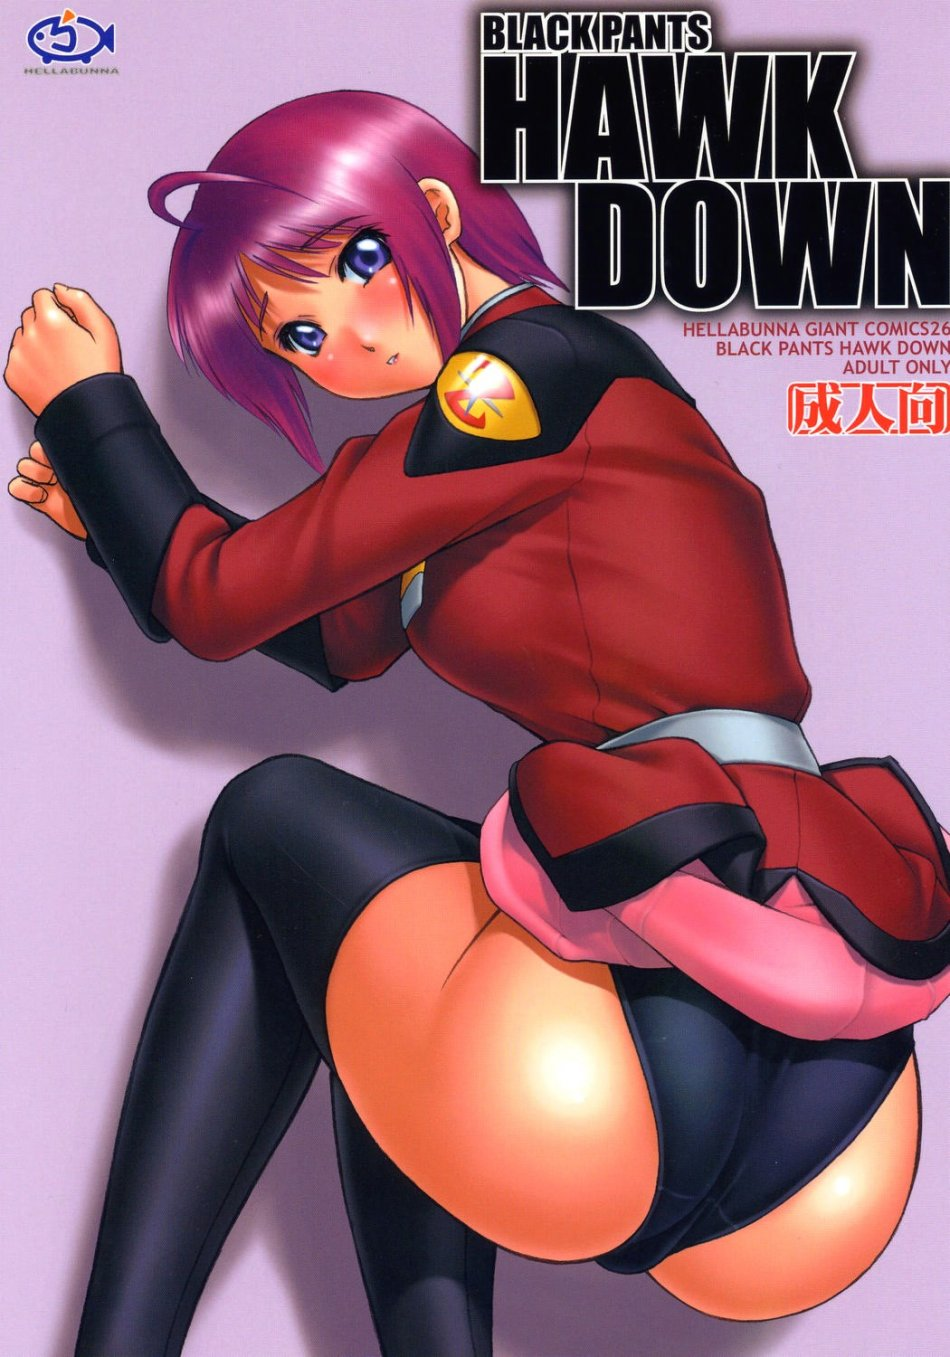 Black Pants Hack Down- Gundam Seed Destiny porn comics 8 muses